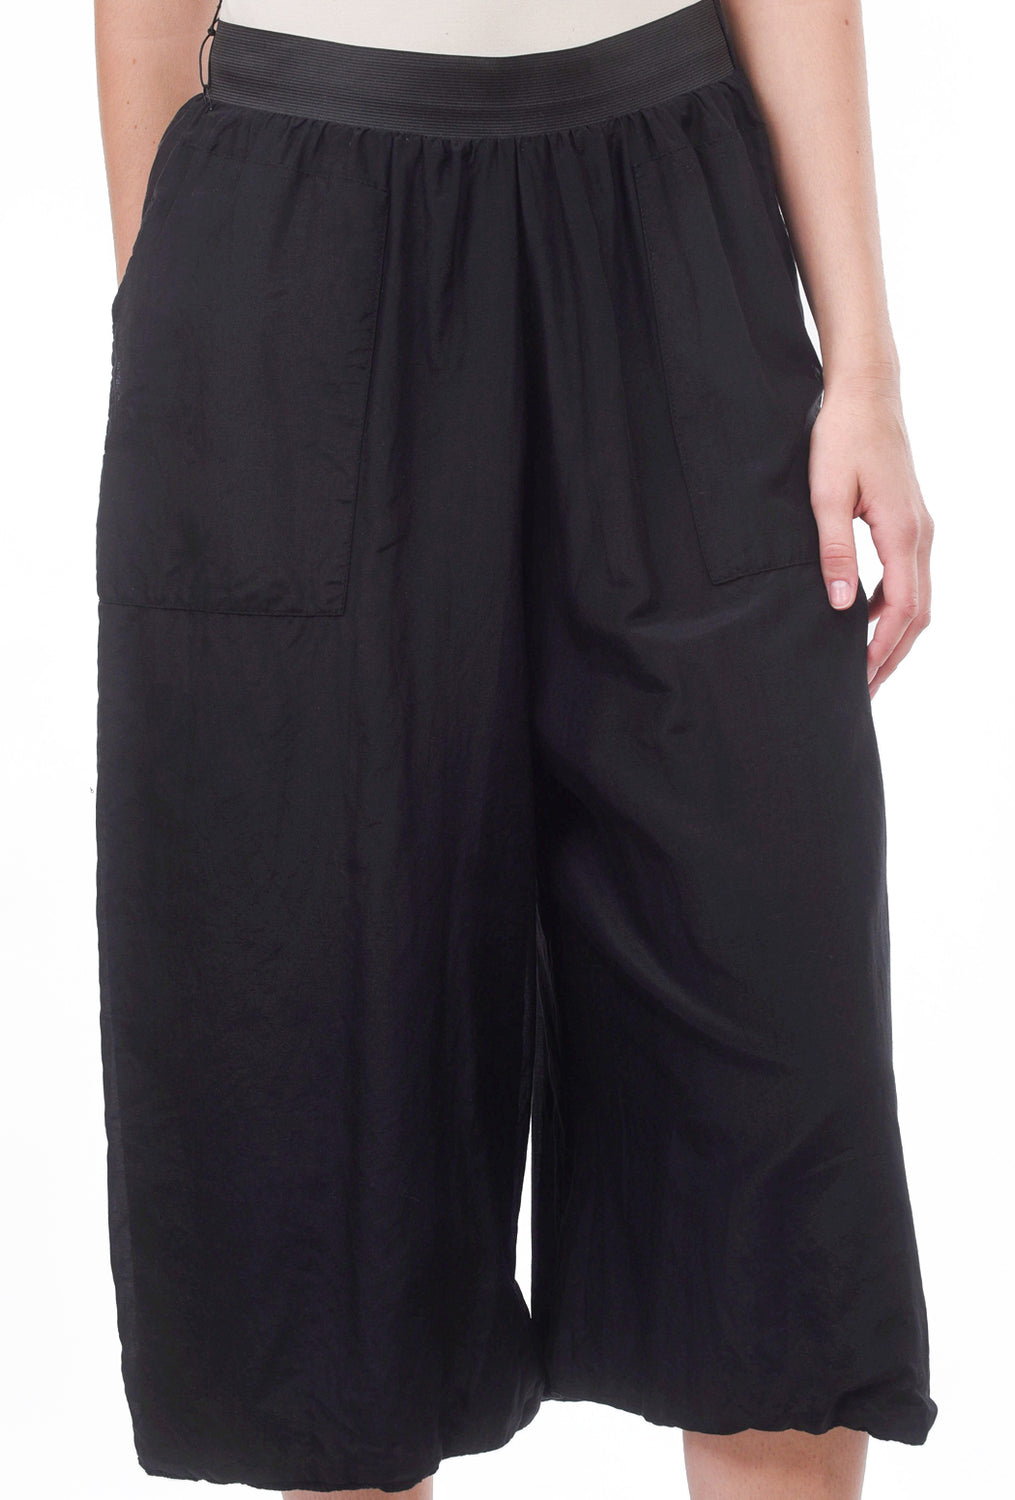 Veronique Miljkovitch Nadine Silk-Cotton Pants, Black